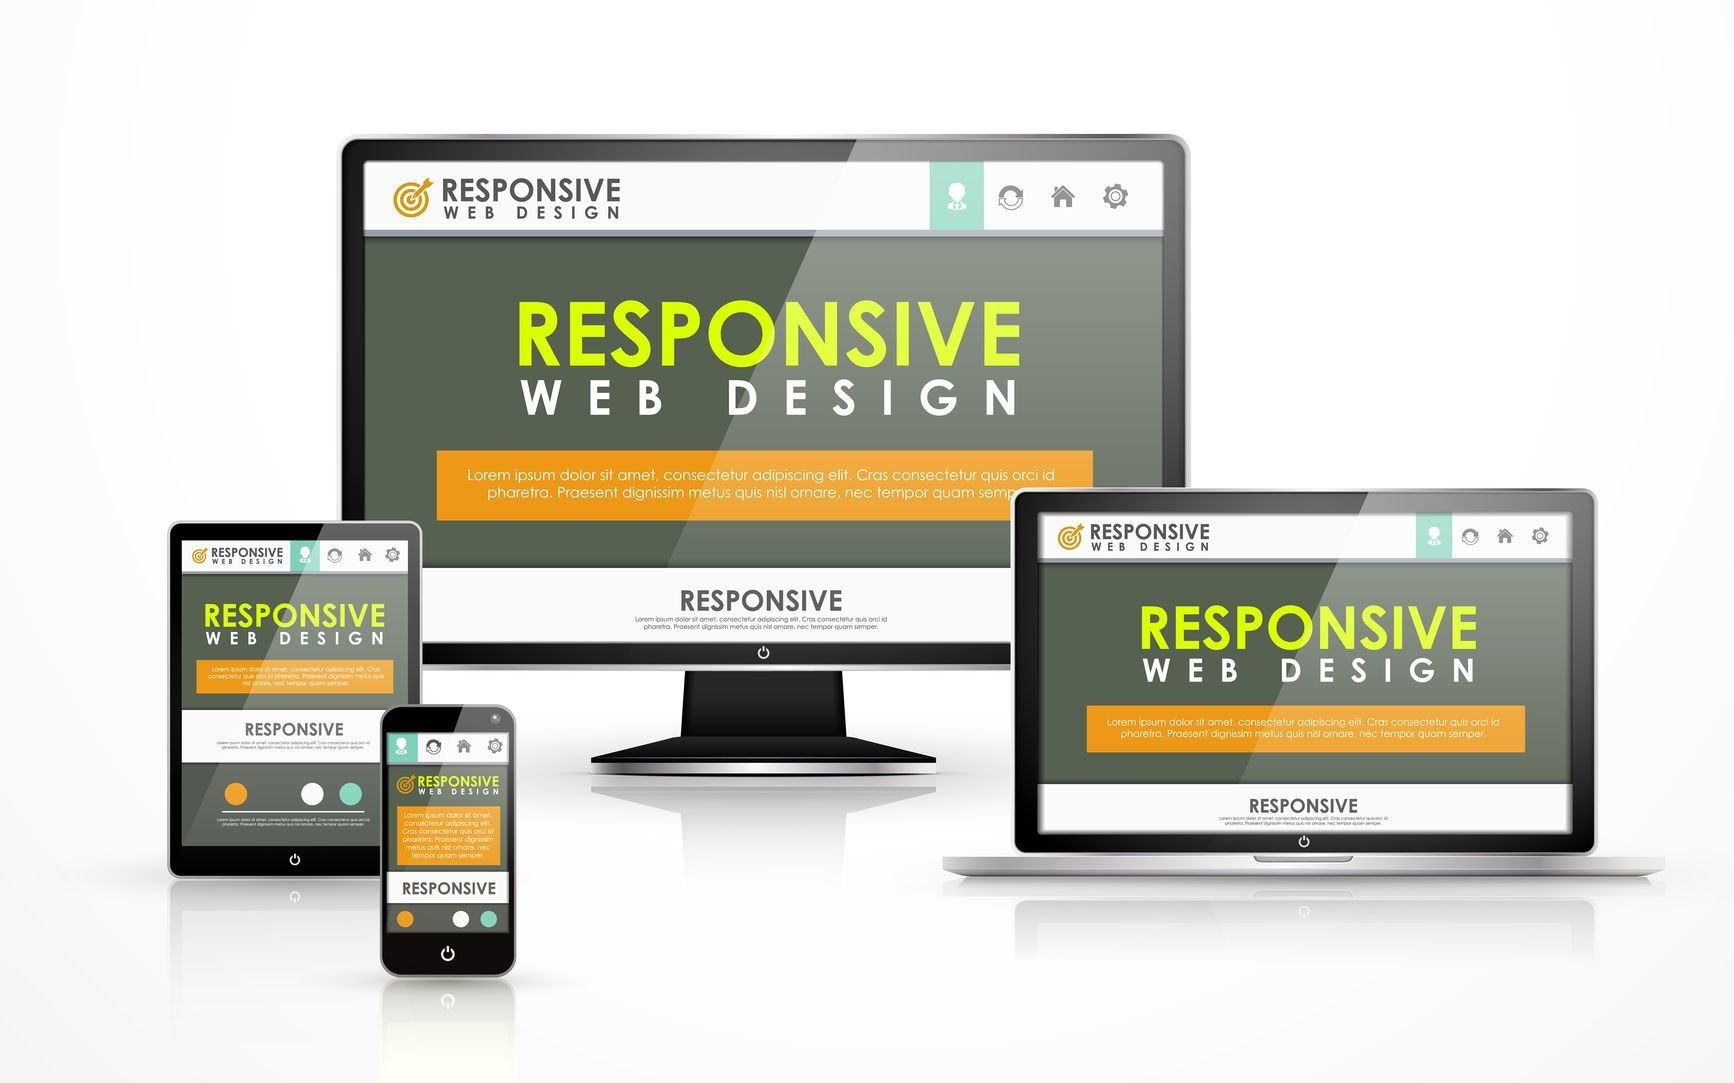 Win Games Of Thrones With Responsive Web Design Website Design Company Web Design Web Design Agency